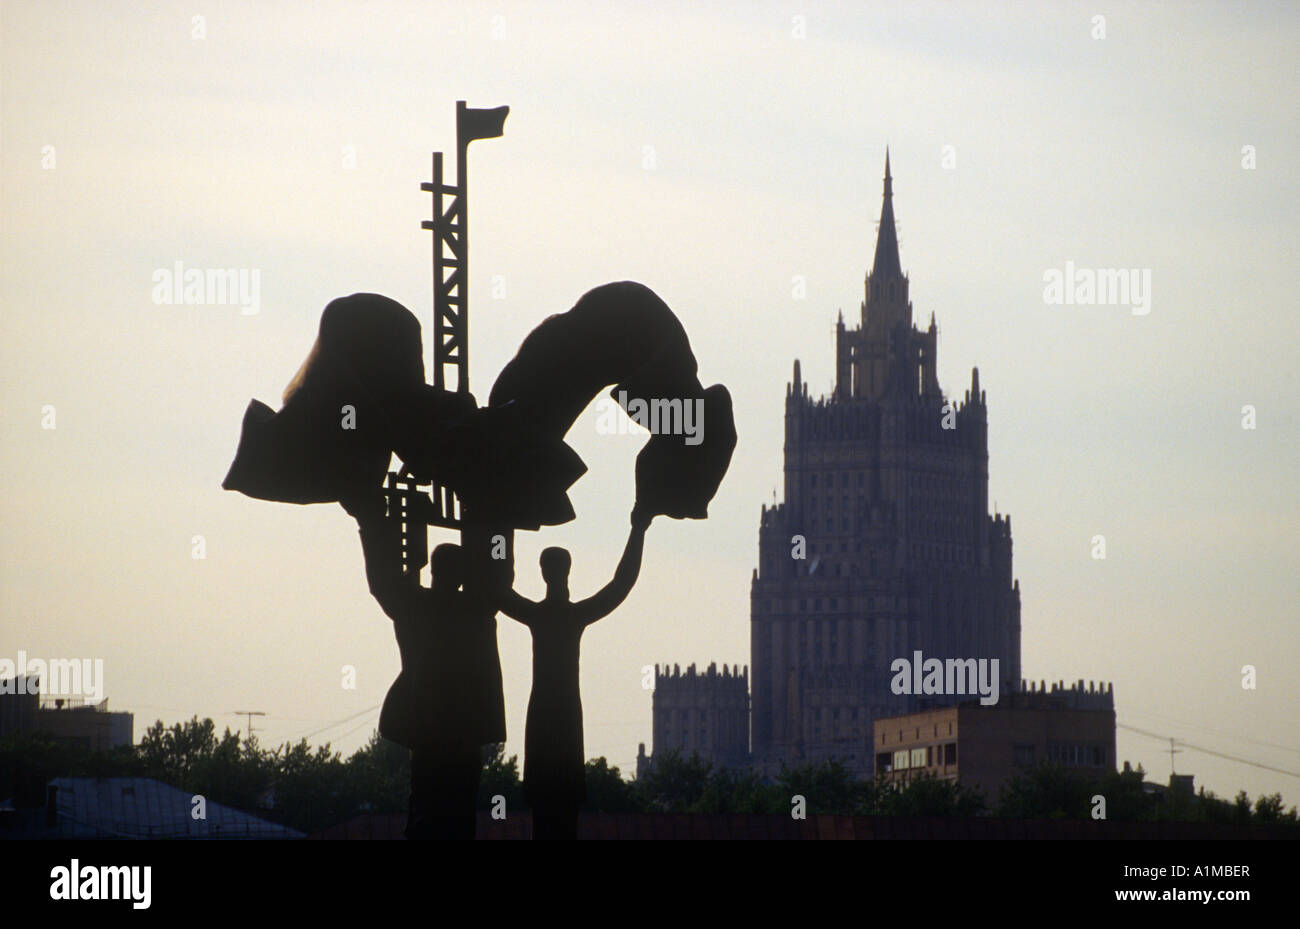 Stalinist skyscraper, Moscow, Russia - Stock Image